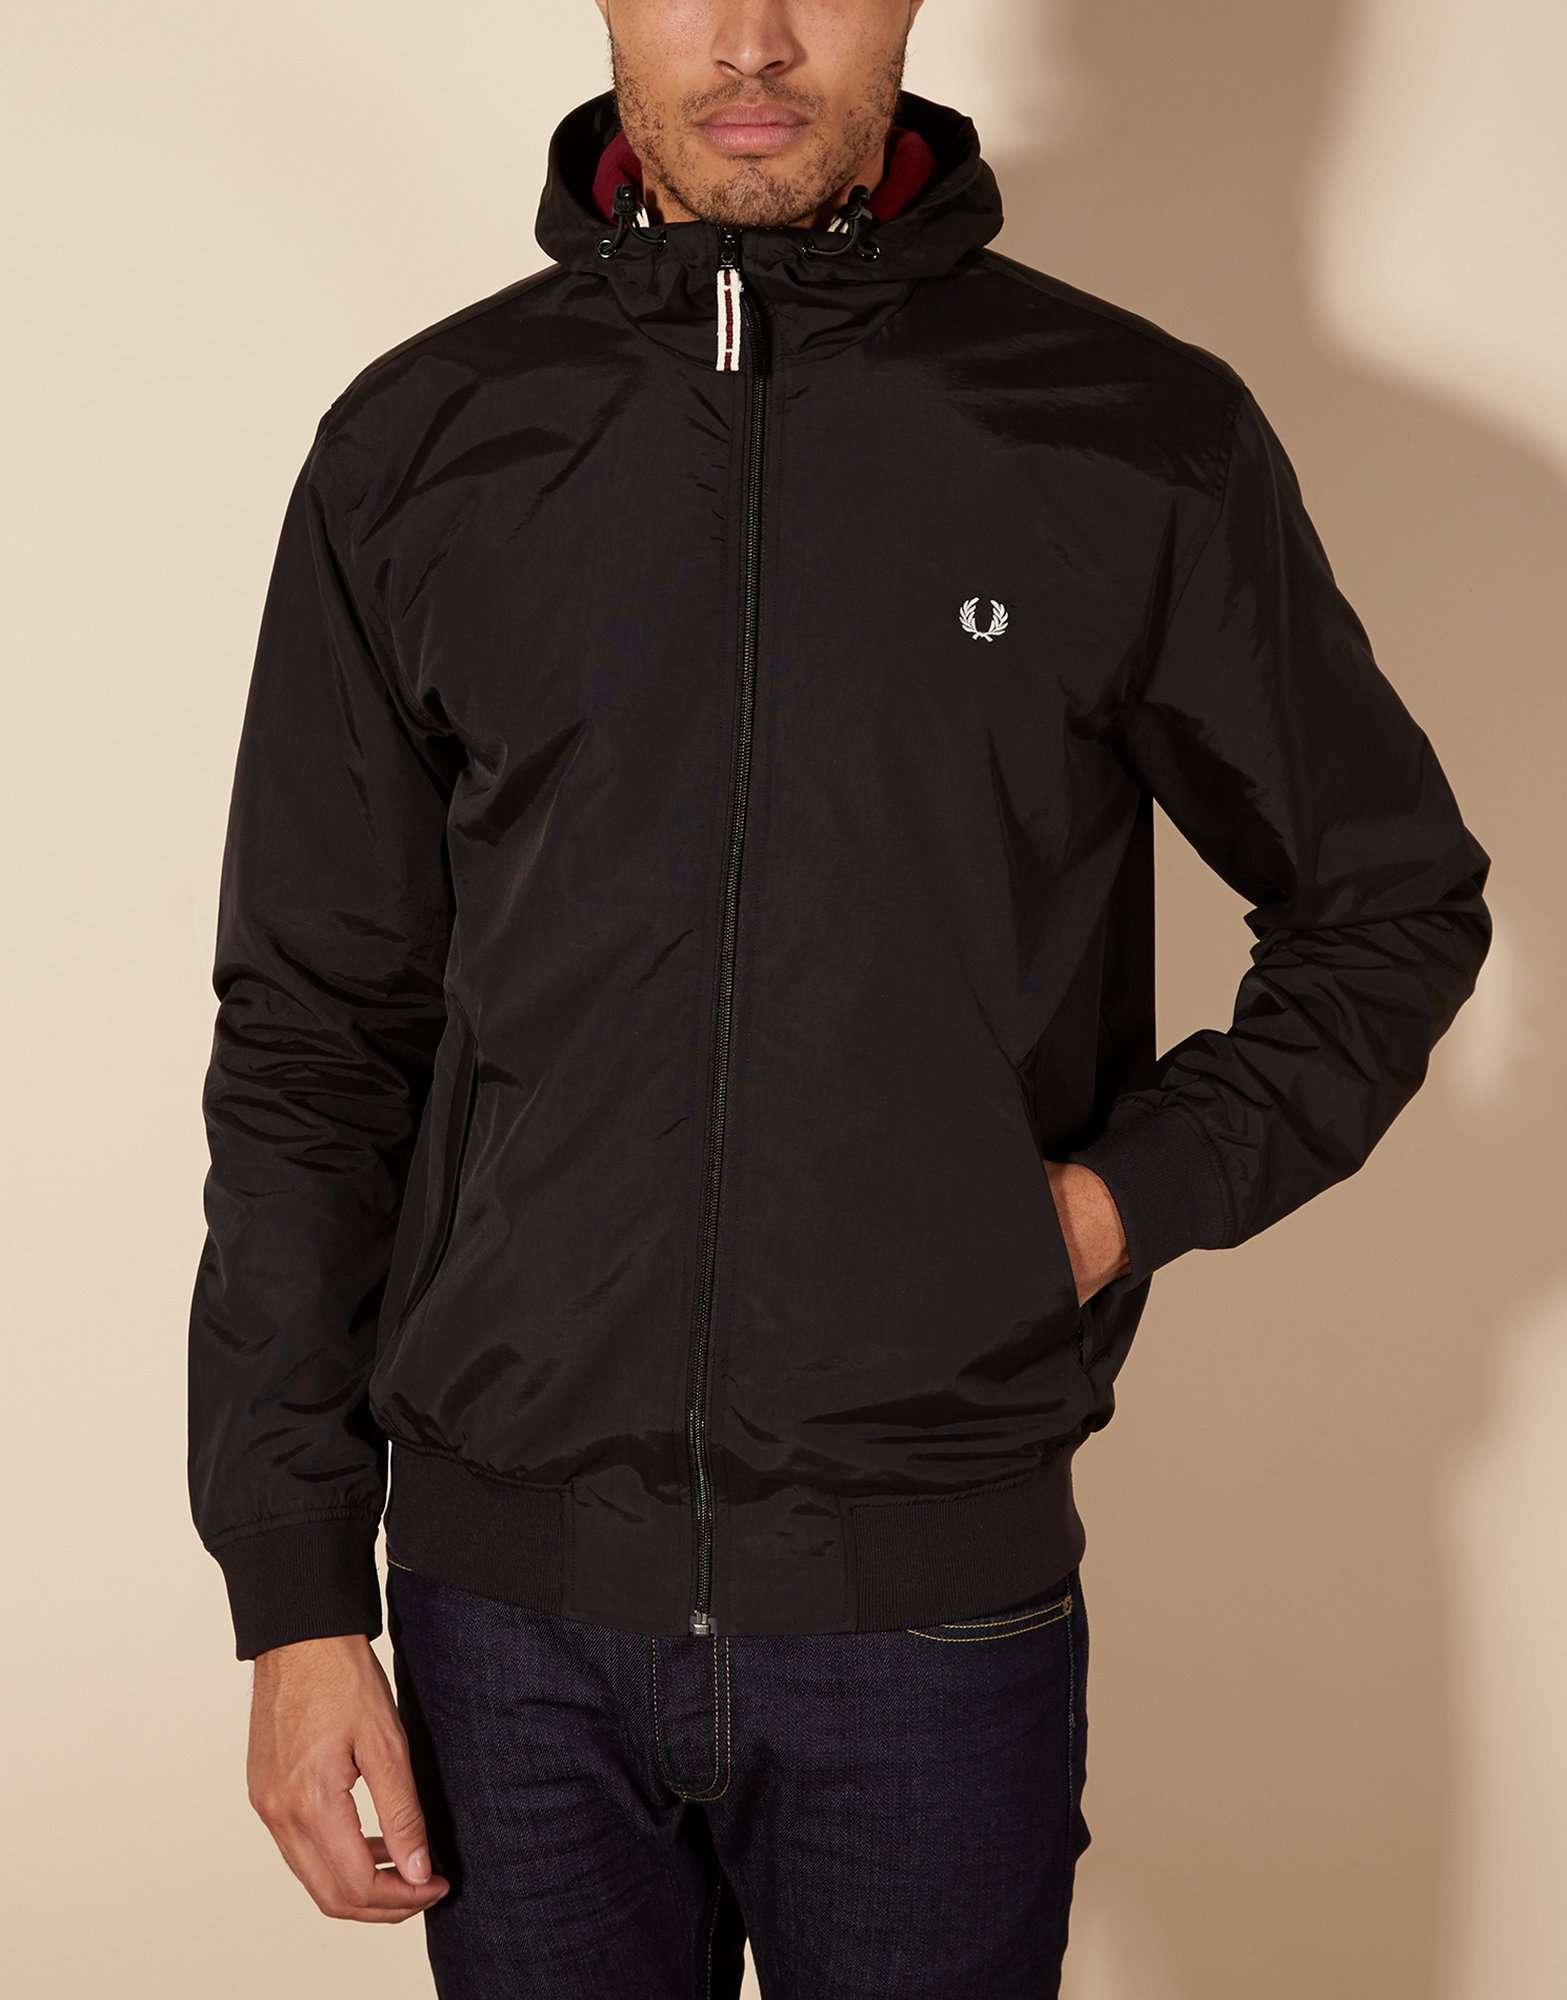 fred perry hooded sailing jacket scotts menswear. Black Bedroom Furniture Sets. Home Design Ideas